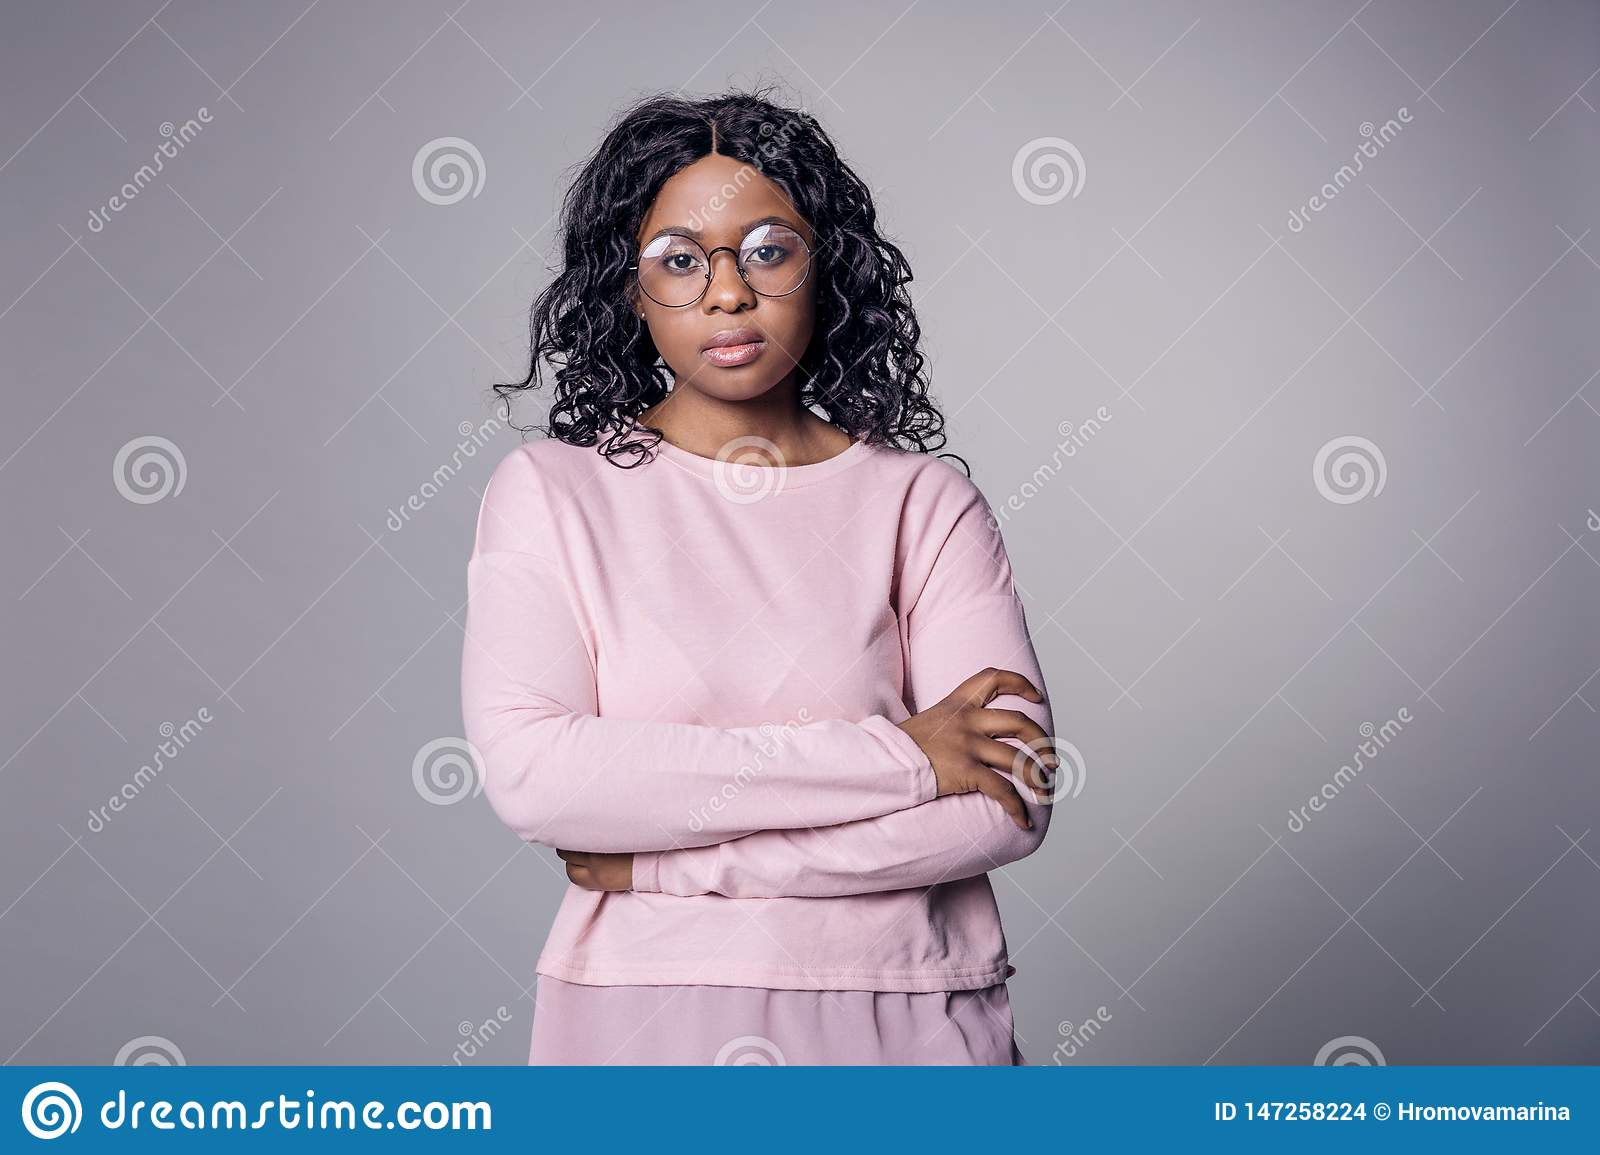 A dark-skinned girl in a pink jacket round glasses looks at the camera all the same located on a gray background.